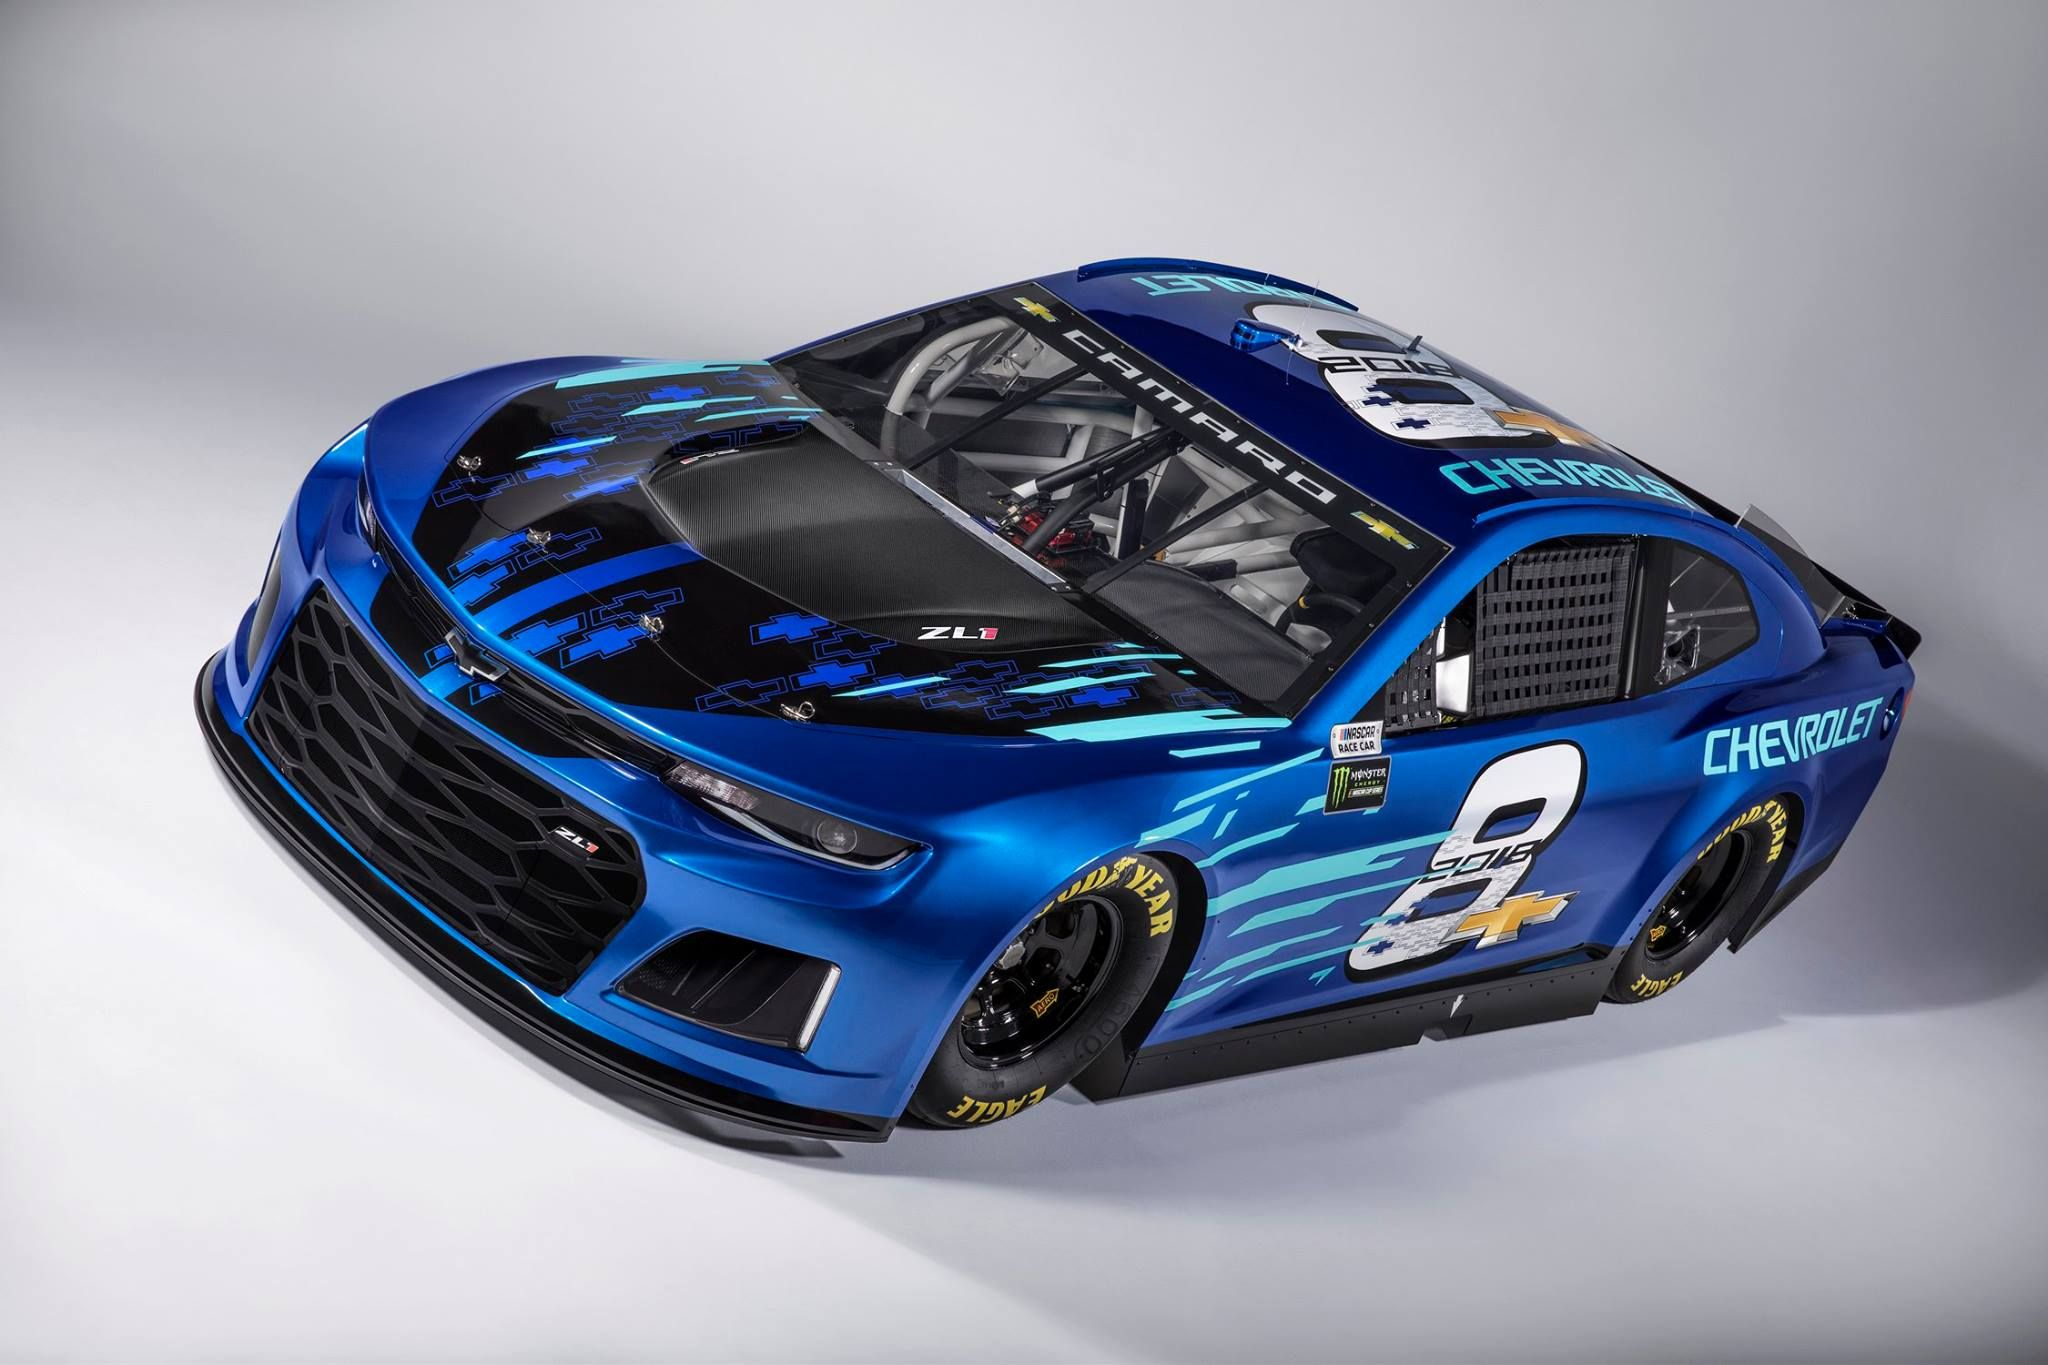 2018 Nascar Cup Series Camaro Released Racing News Chevrolet Camaro Zl1 Chevy Camaro Zl1 Nascar Race Cars